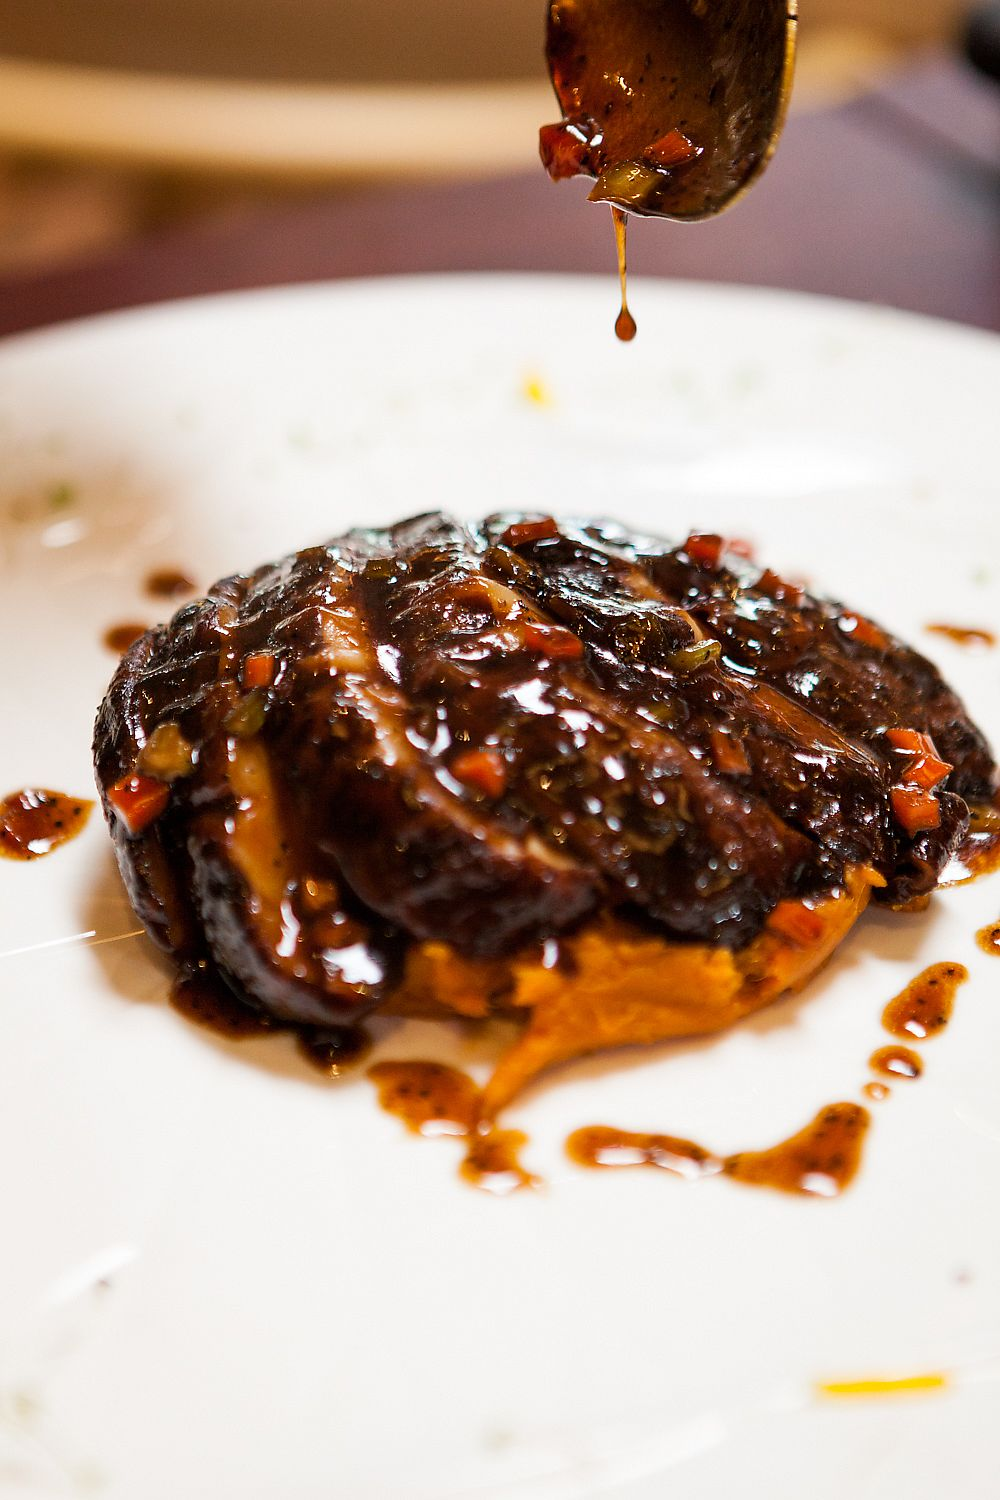 "Photo of Ooak Kitchen  by <a href=""/members/profile/ooakkitchen"">ooakkitchen</a> <br/>Steak Mushroom on Fire: pan fried premium shiitake mushroom, sweet potato mash, black pepper sauce <br/> April 13, 2018  - <a href='/contact/abuse/image/117003/385255'>Report</a>"